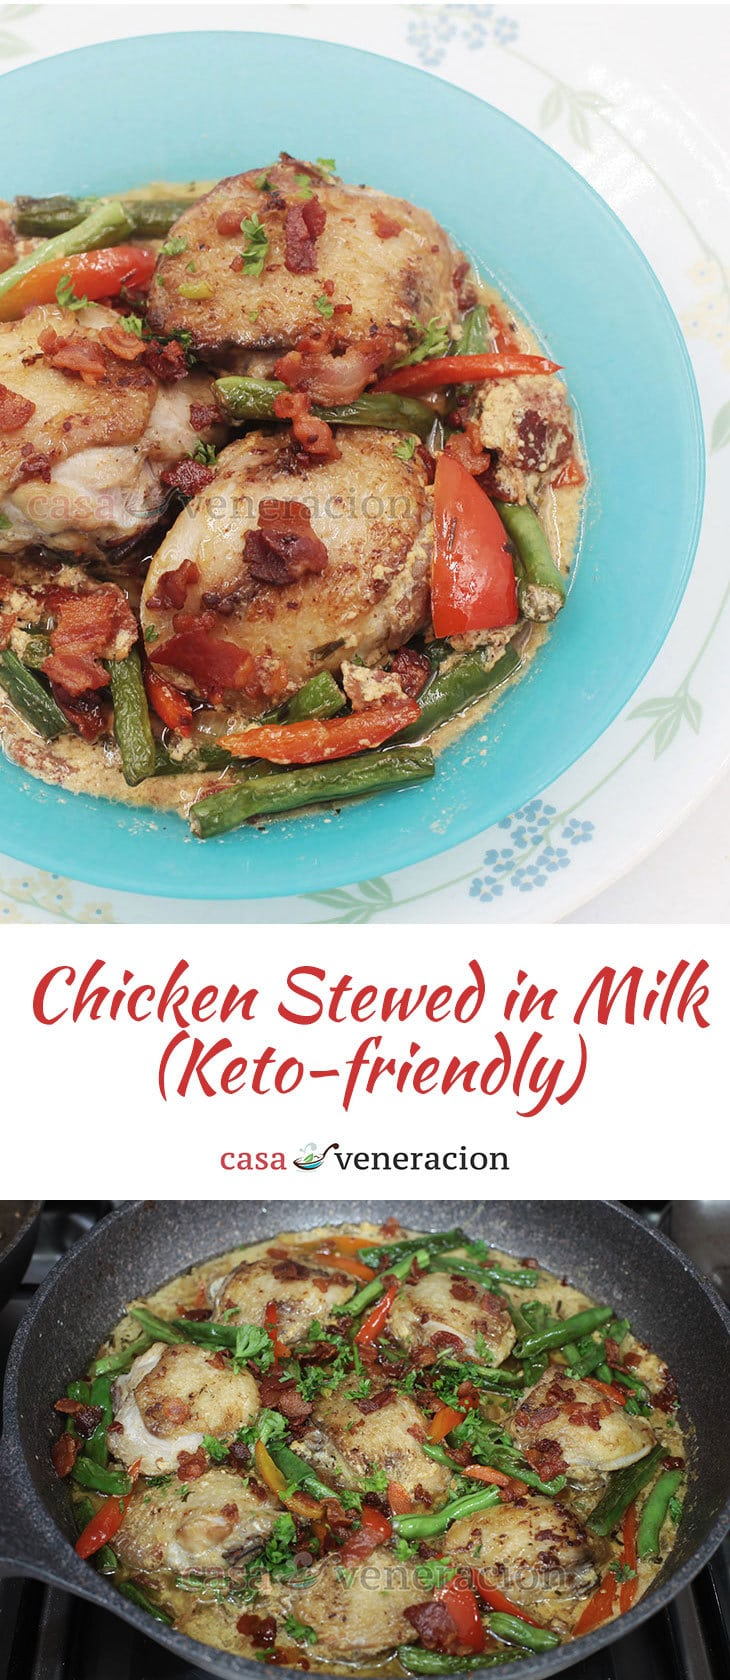 Unbelievably rich and tasty! Imagine the chicken cooking in pure full fat milk and absorbing all its flavor. Keto-friendly chicken stewed in milk is a must try!